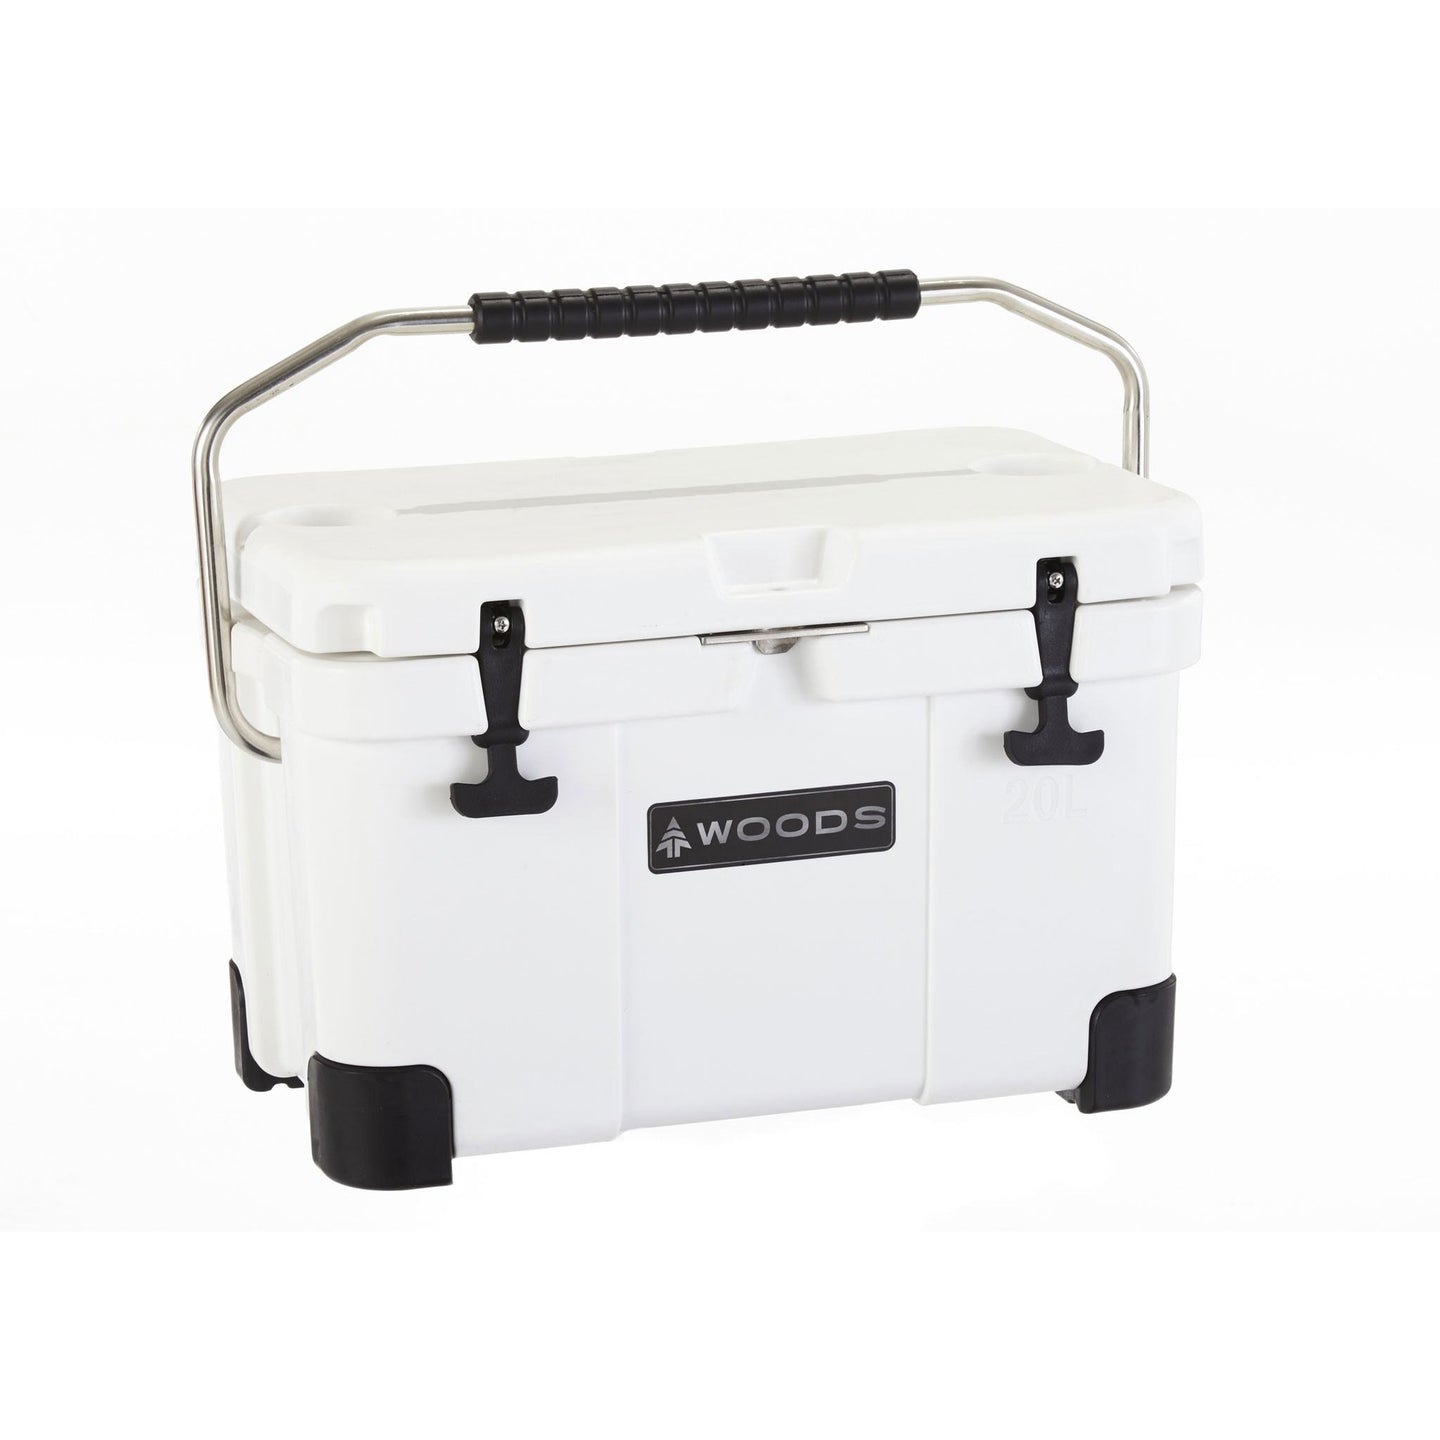 Woods Arctic Roto Molded Hard Cooler 21 Quart